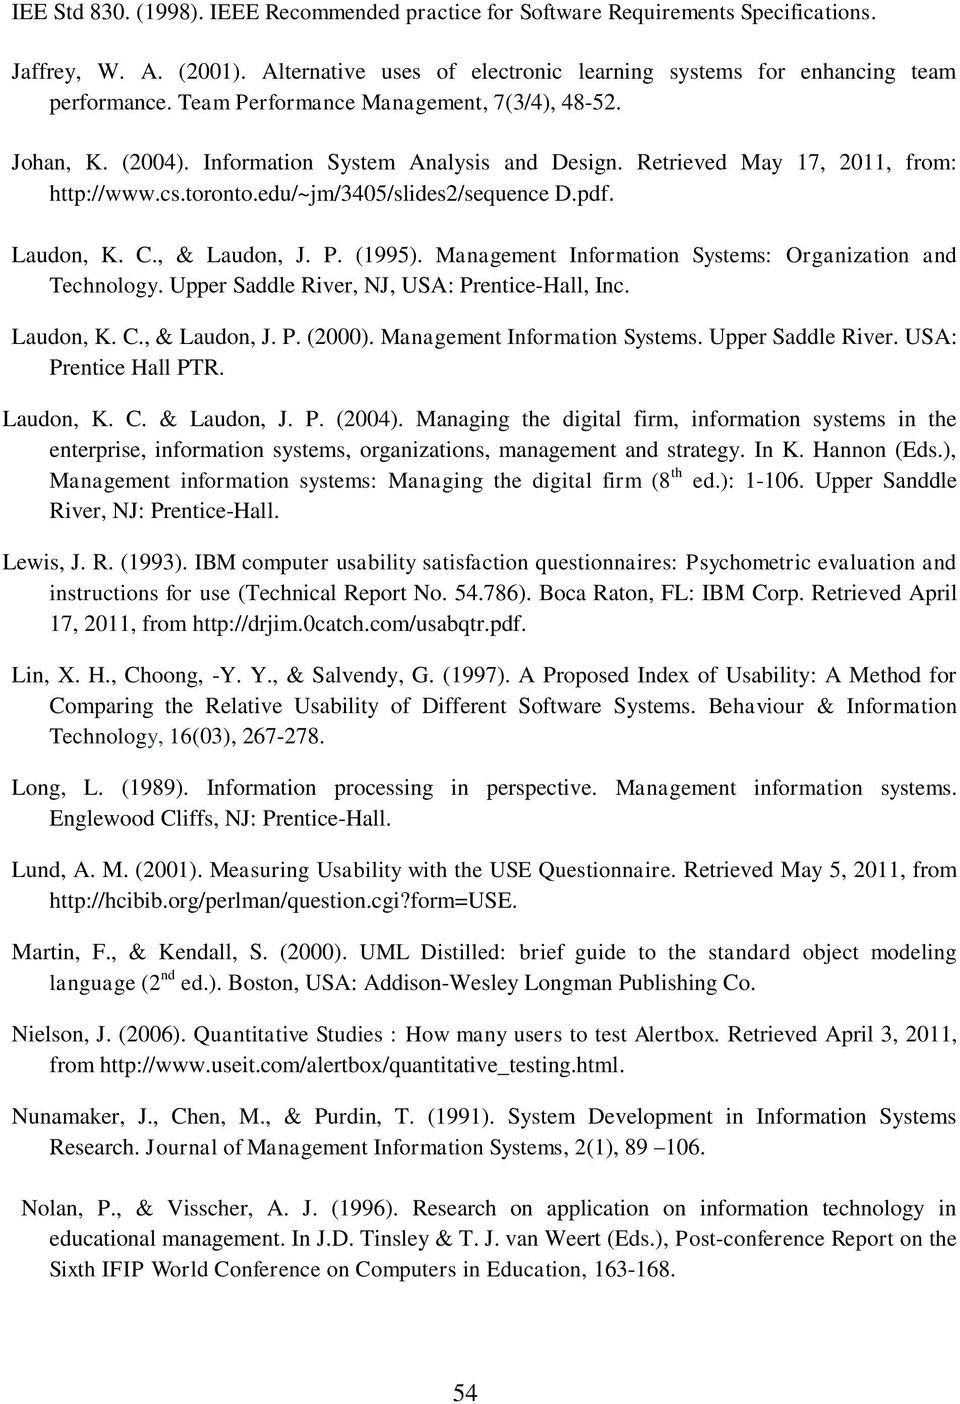 Web Based Phd Thesis Management Information System For Tripoli Faculty Of Computer Technology In Libya Wbptms Salaheddin S Pdf Free Download